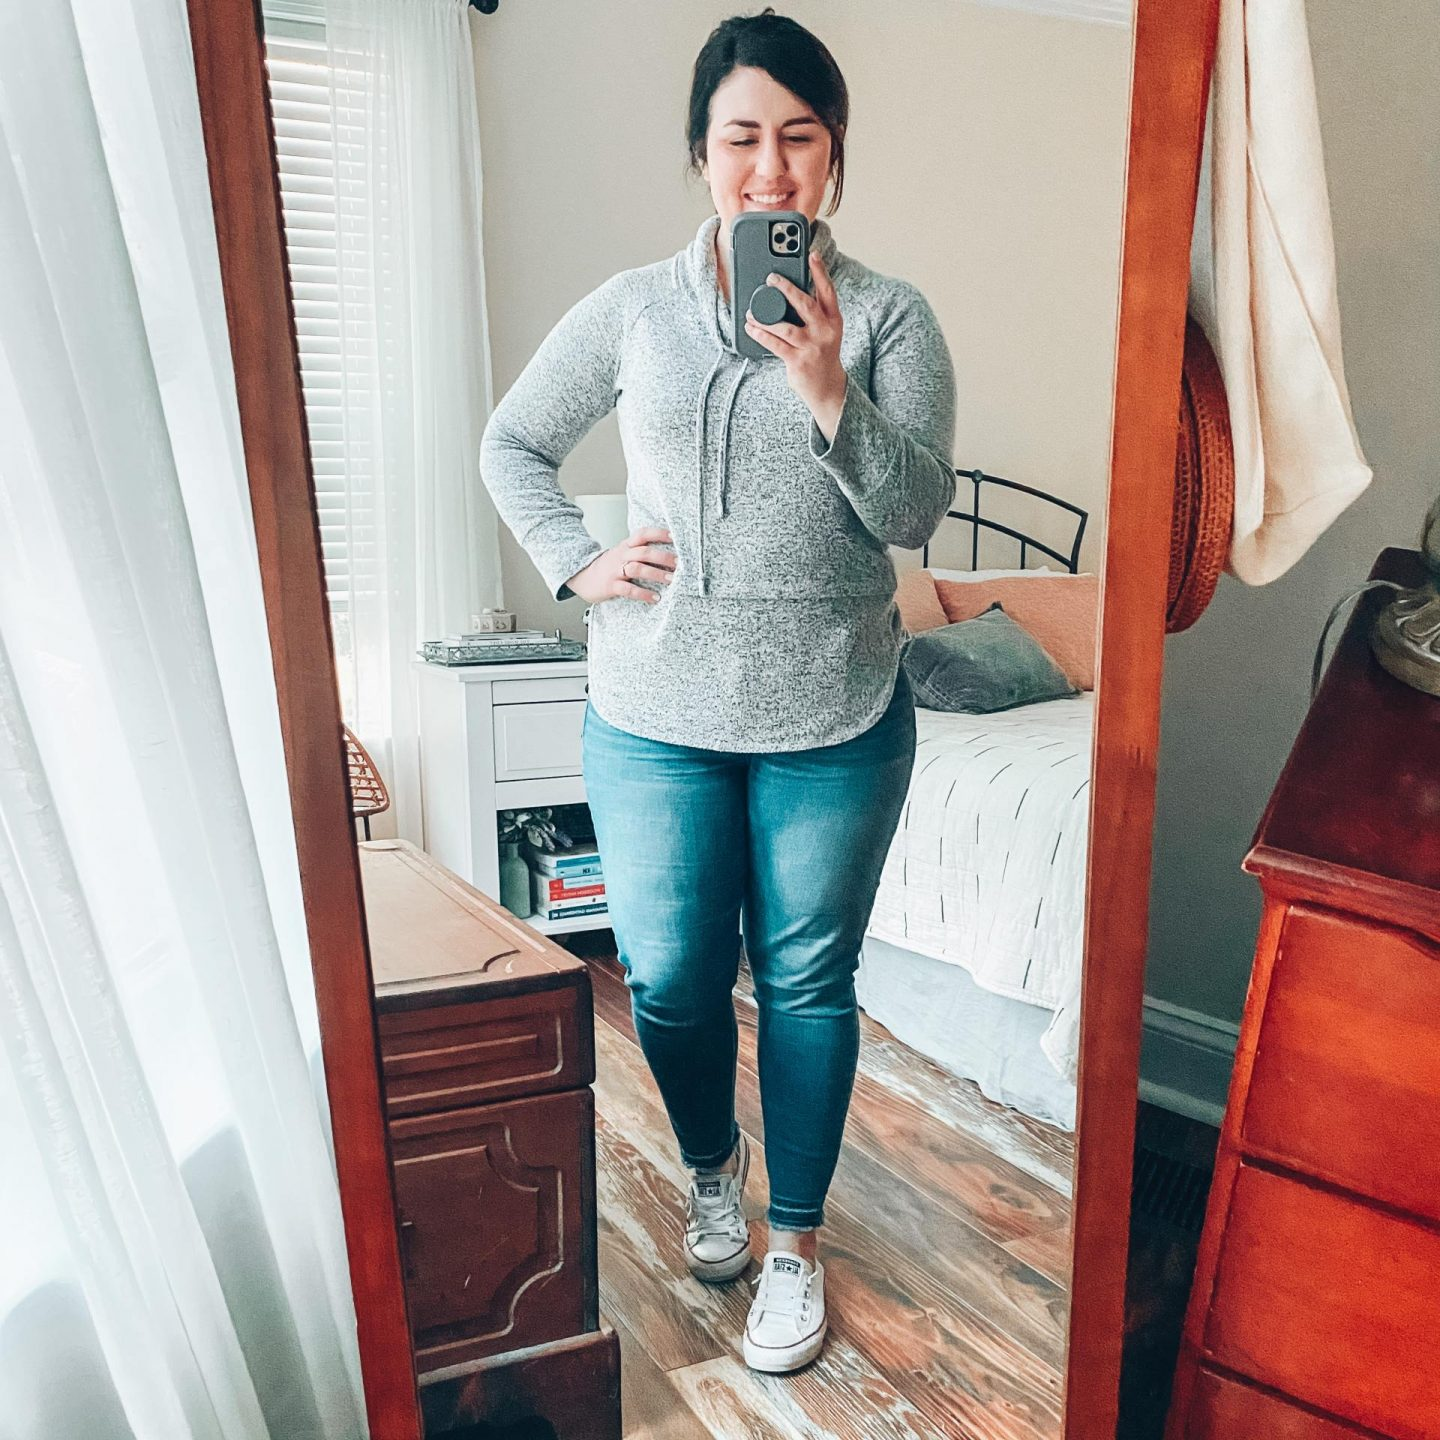 NC blogger Rebecca Lately is sharing her favorite fall outfits from the past year. If you need fall outfit inspo, check this out!